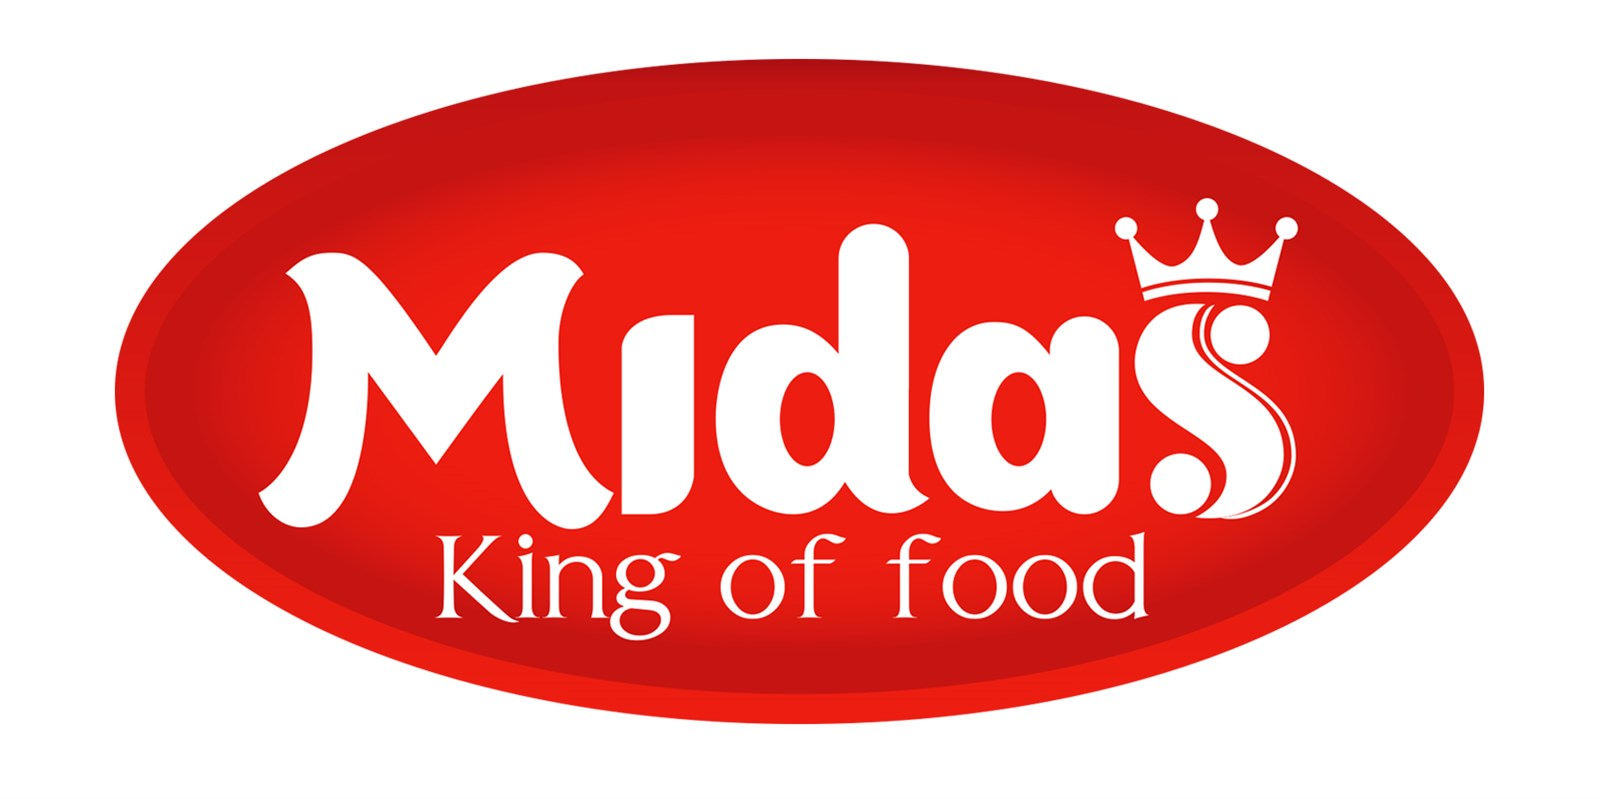 Midass - King of Foods